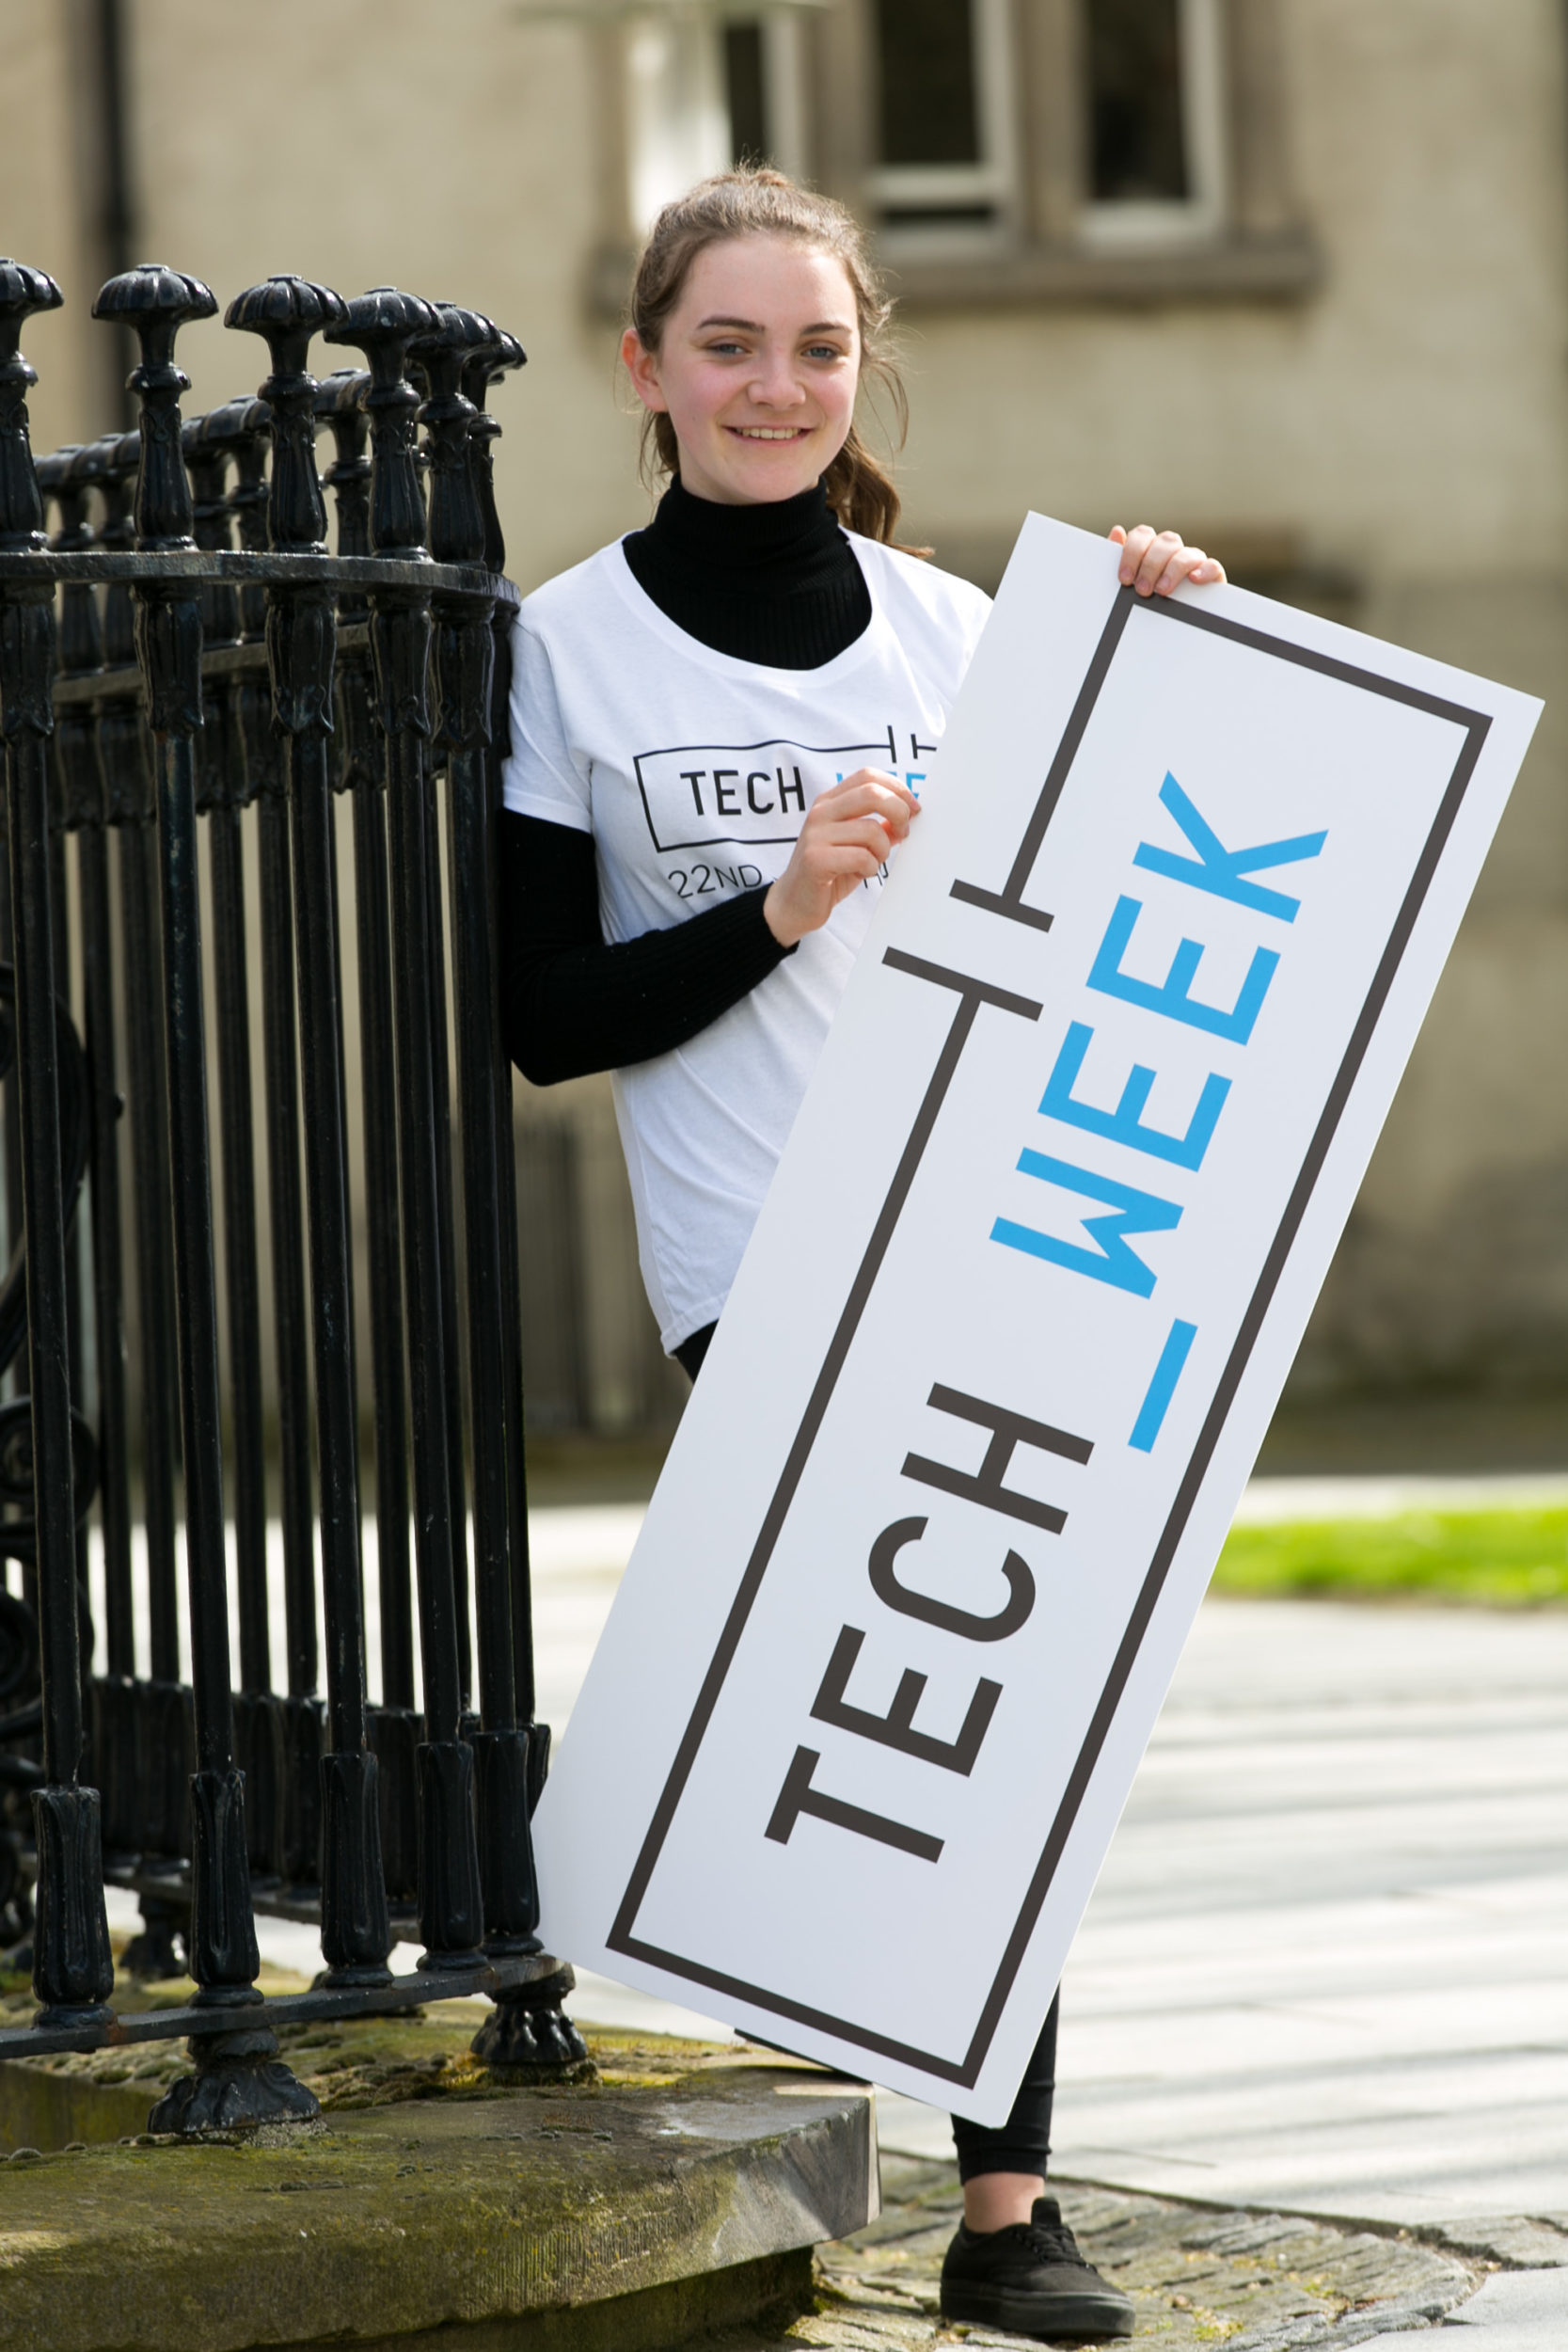 Tech Week to go ahead with a variety of online events and activities